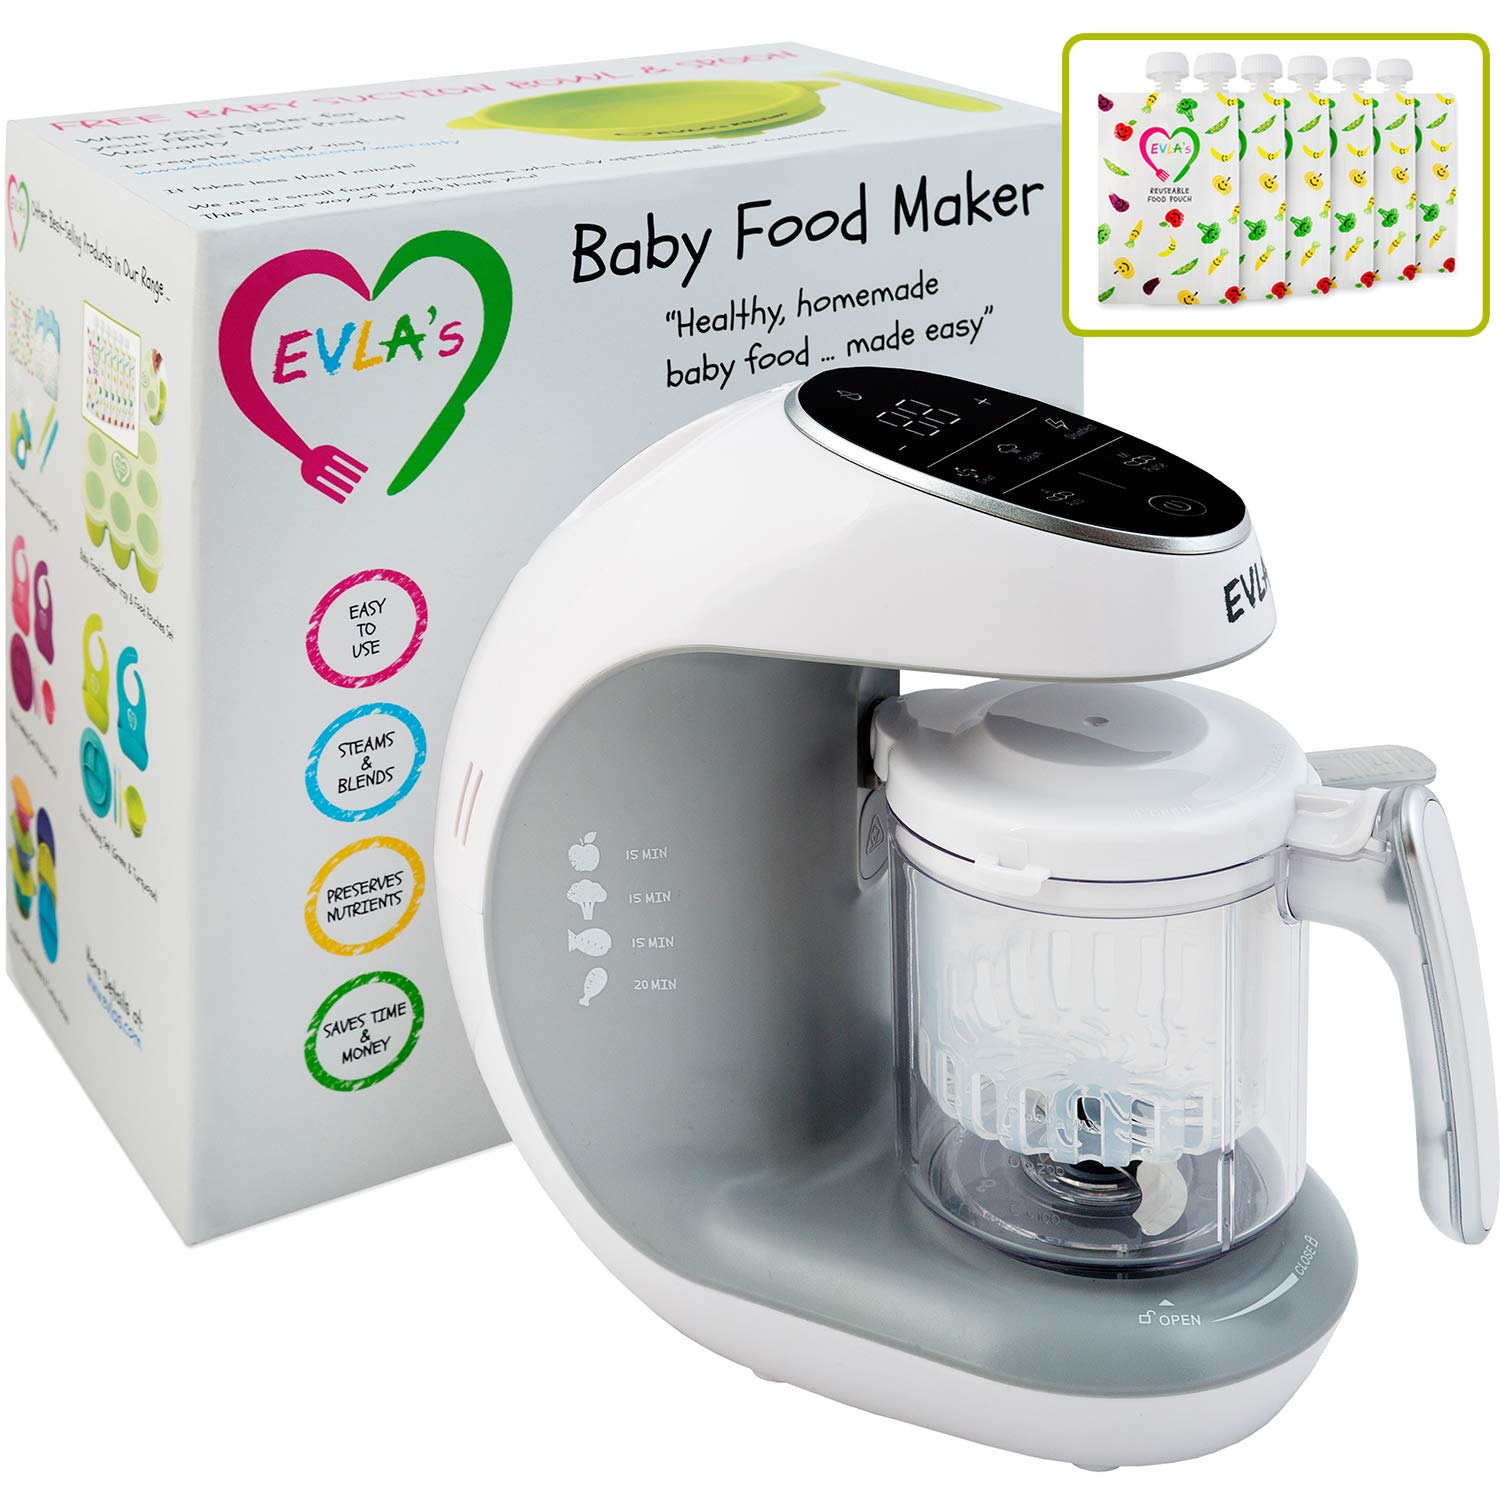 Baby Food Maker | Baby Food Processor Blender Grinder Steamer | Cooks & Blends Healthy Homemade Baby Food in Minutes | Self Cleans | Touch Screen Control | 6 Reusable Food Pouches